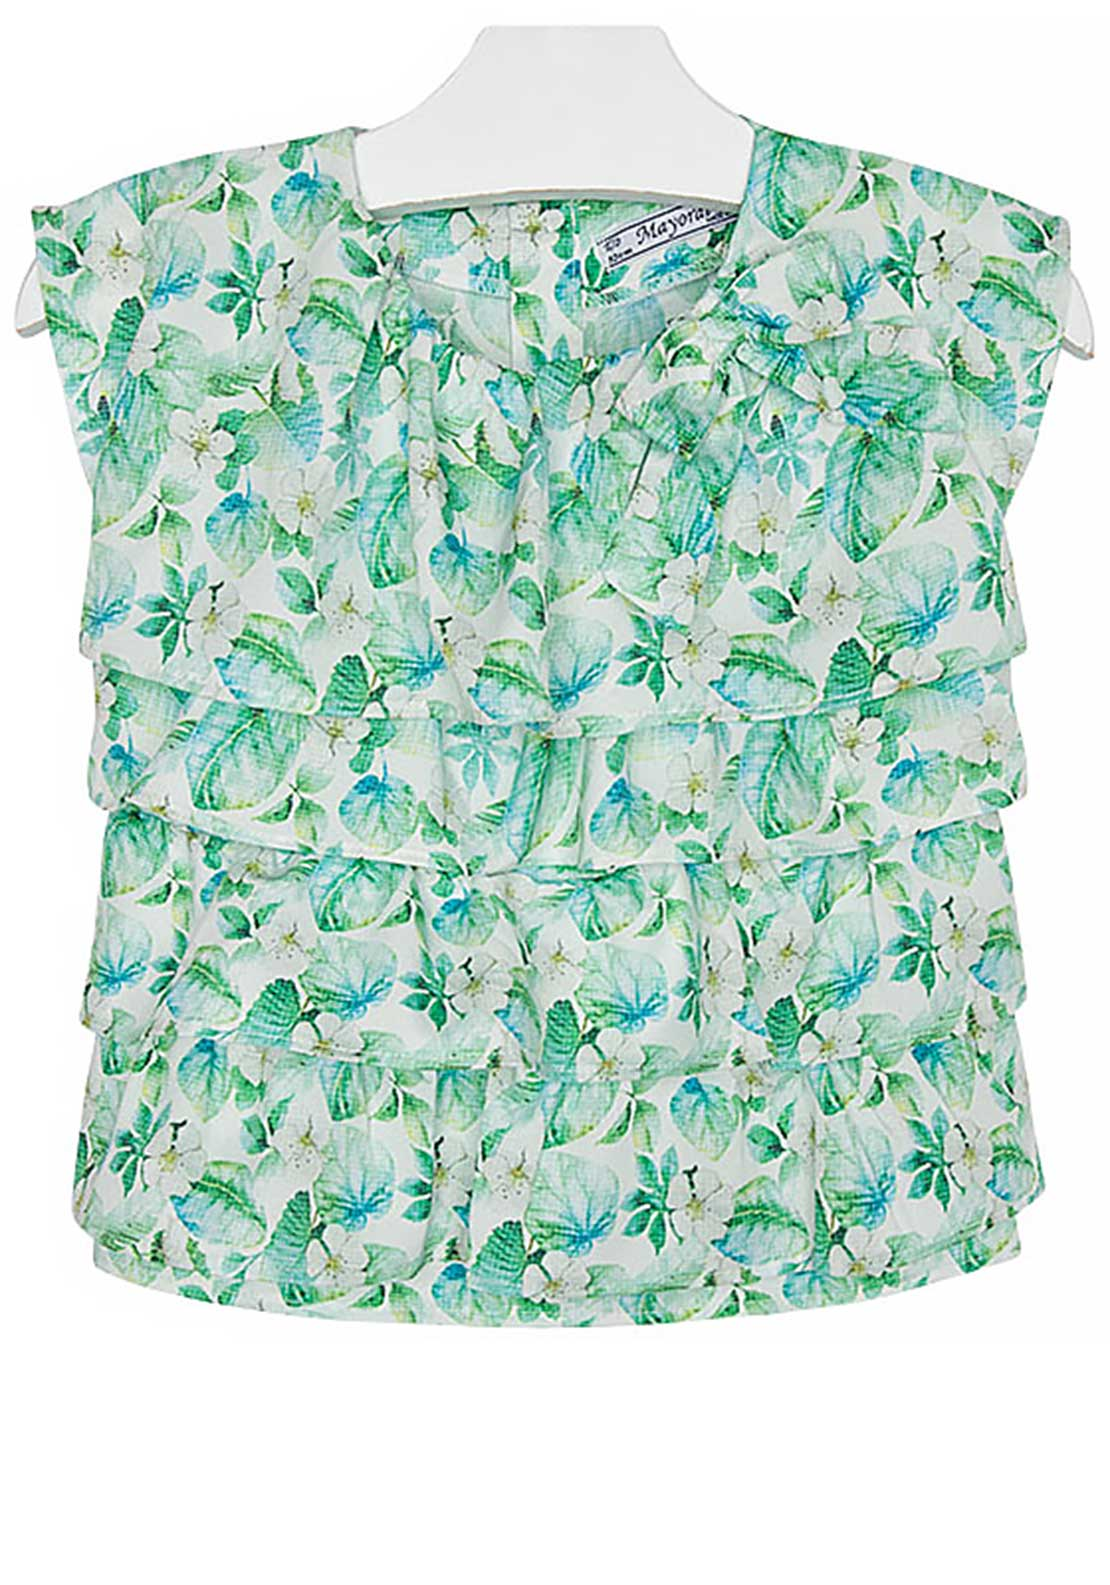 Mayoral Girls Frill Layered Floral Print Top, Green